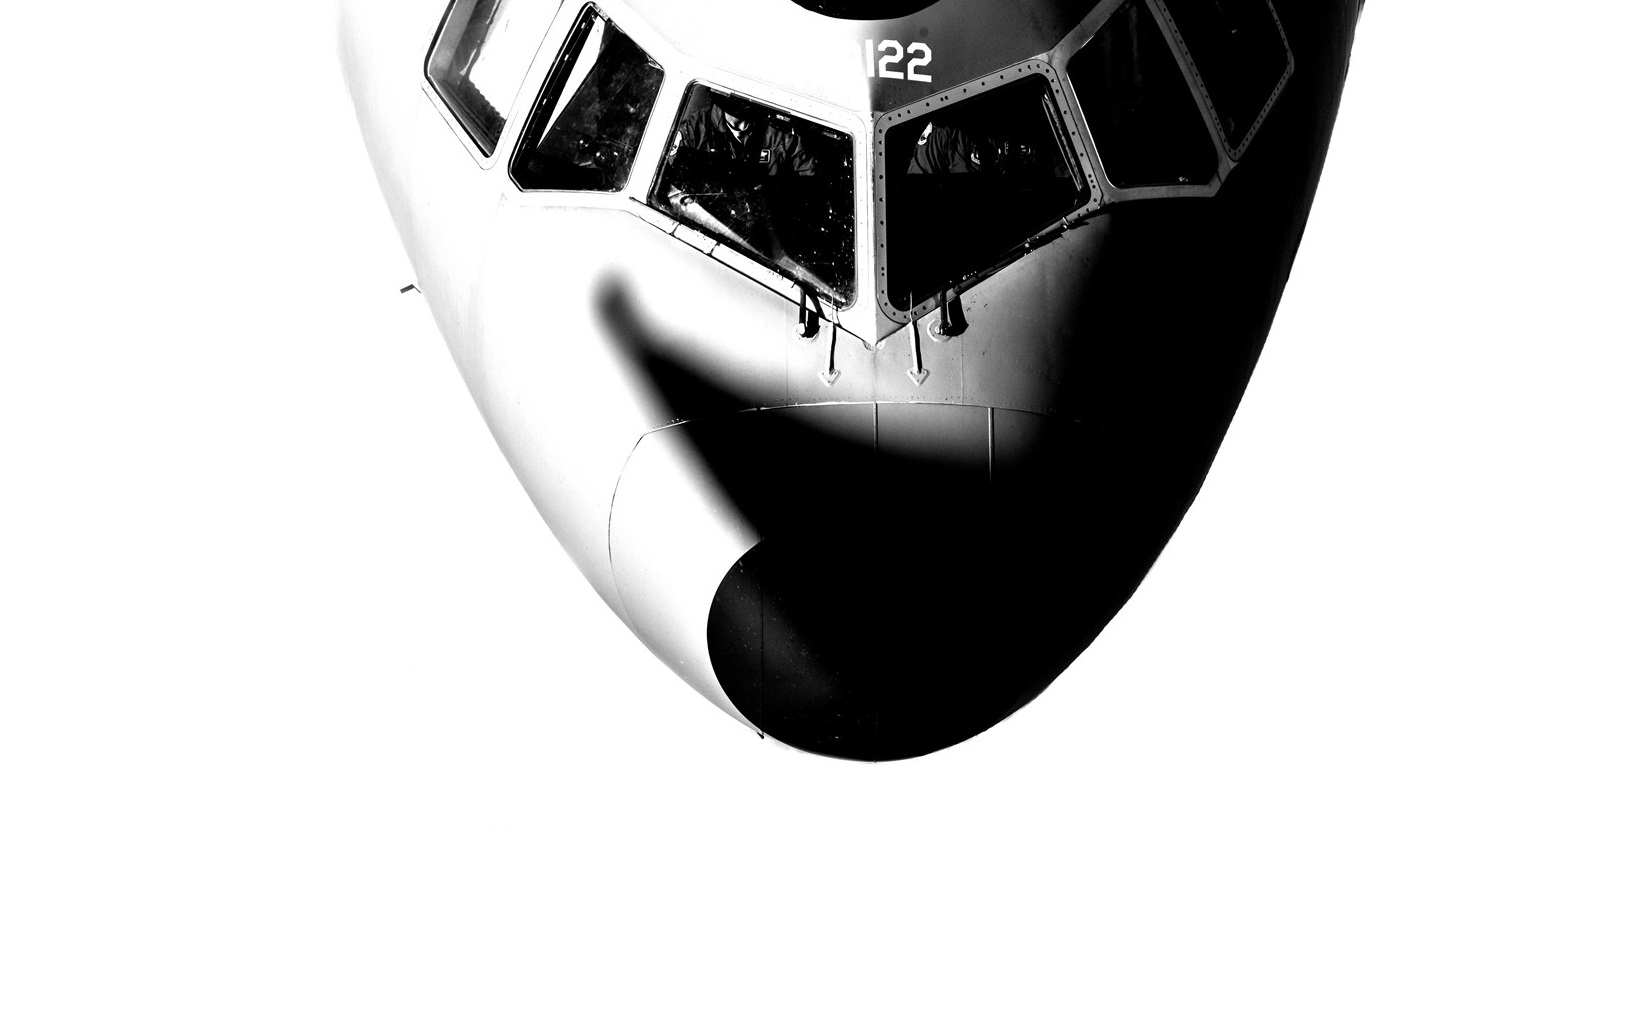 black and white aircraft from above showing into cockpit